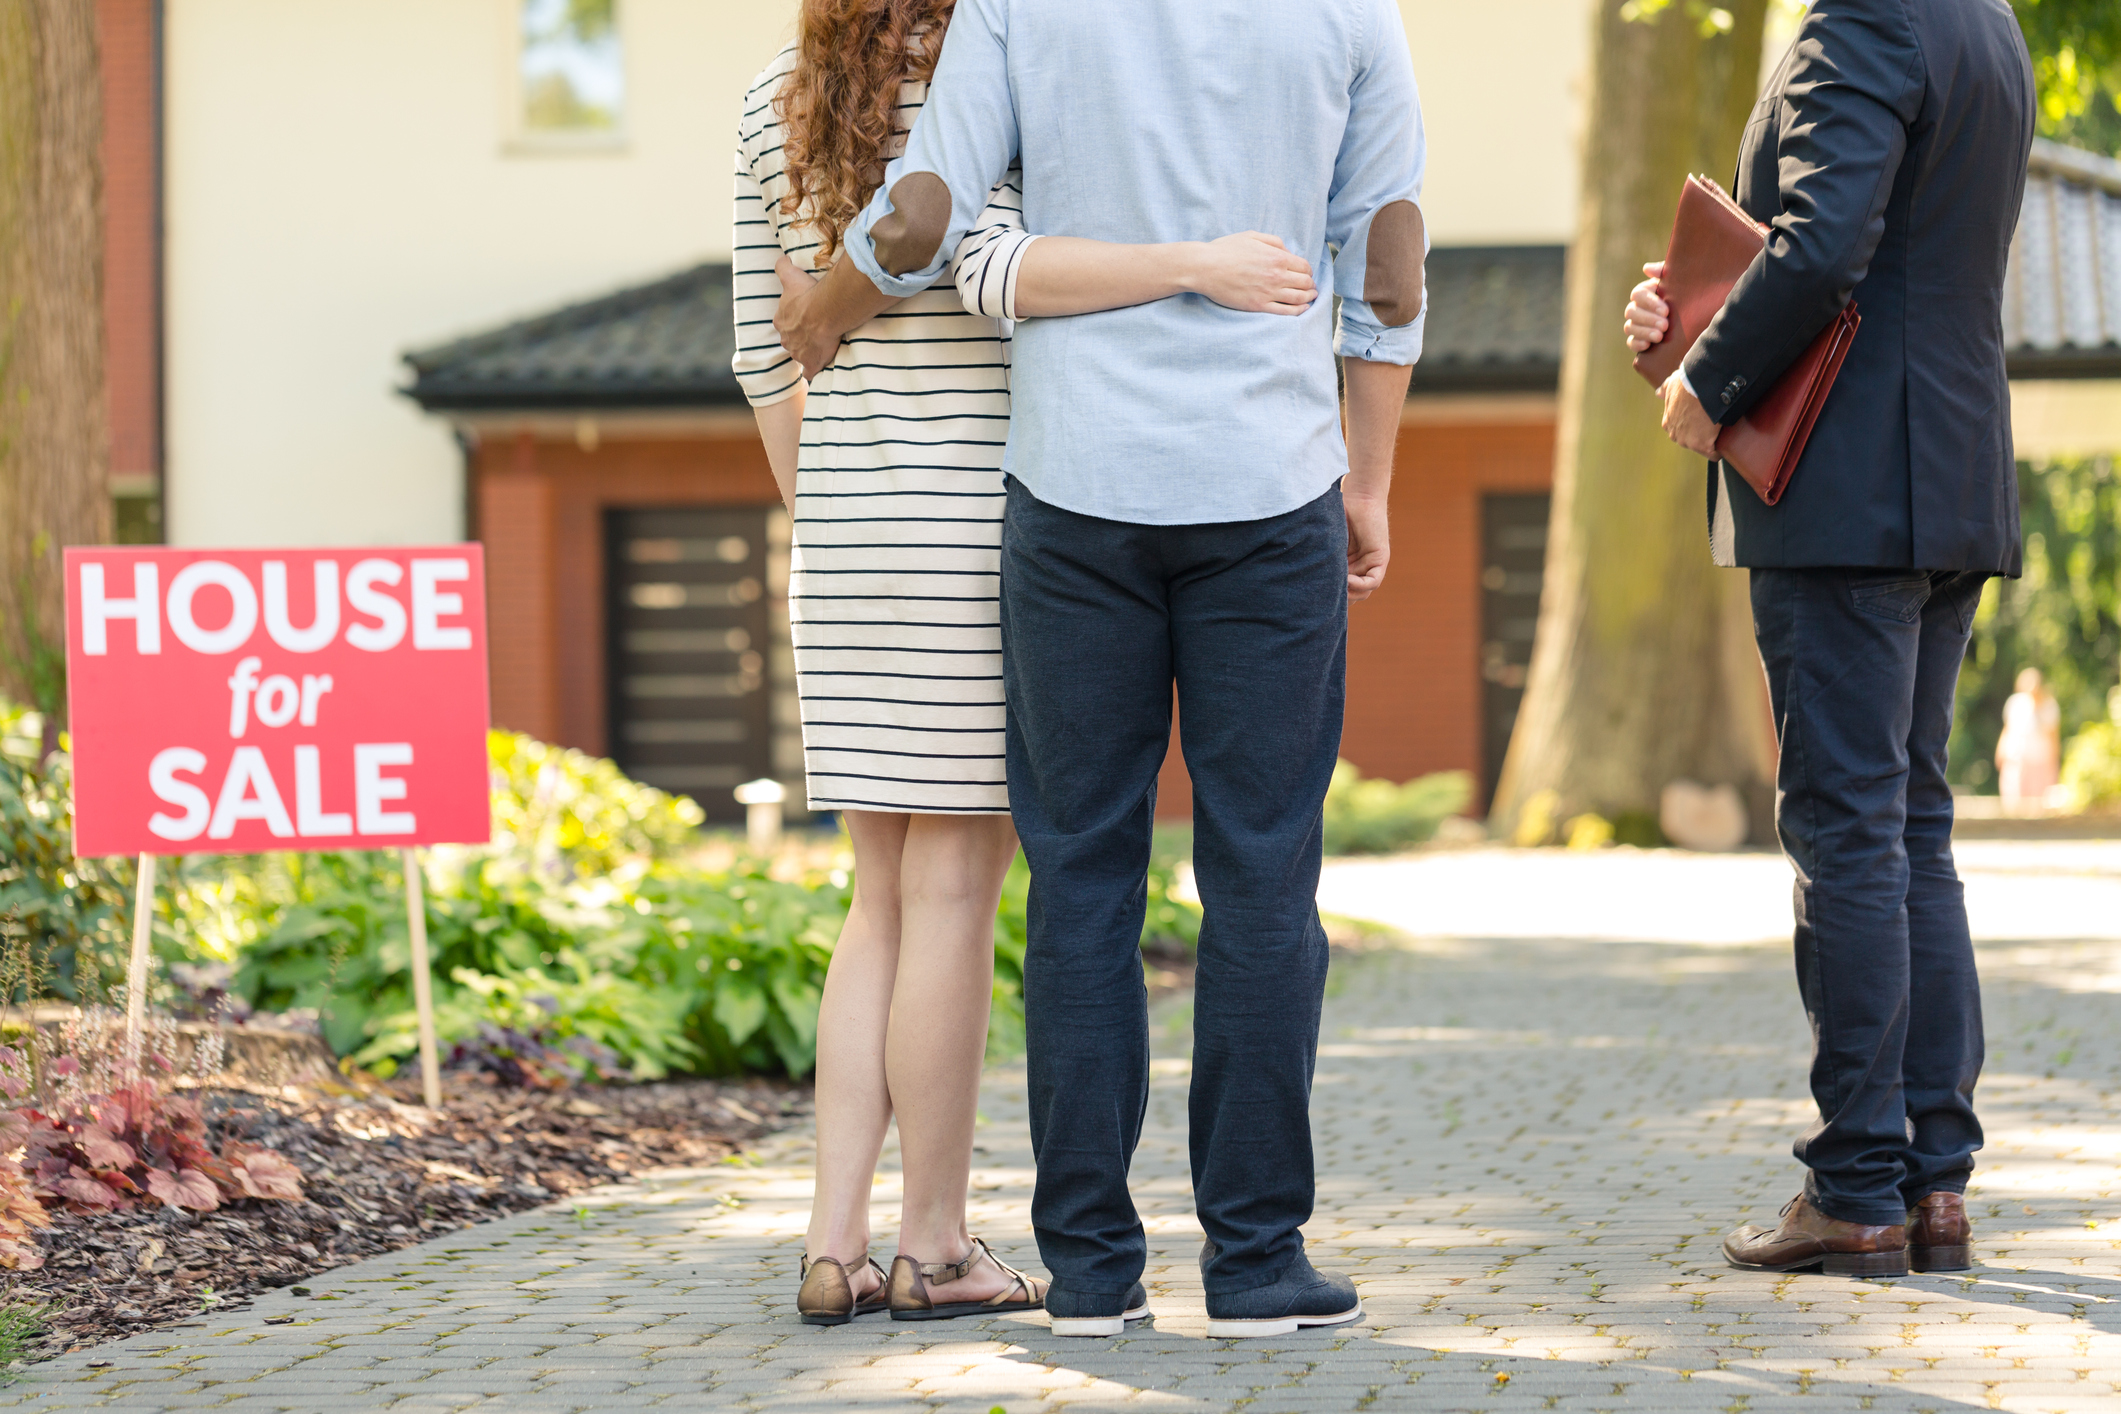 Real Estate License Checklist: What to Do Before Applying